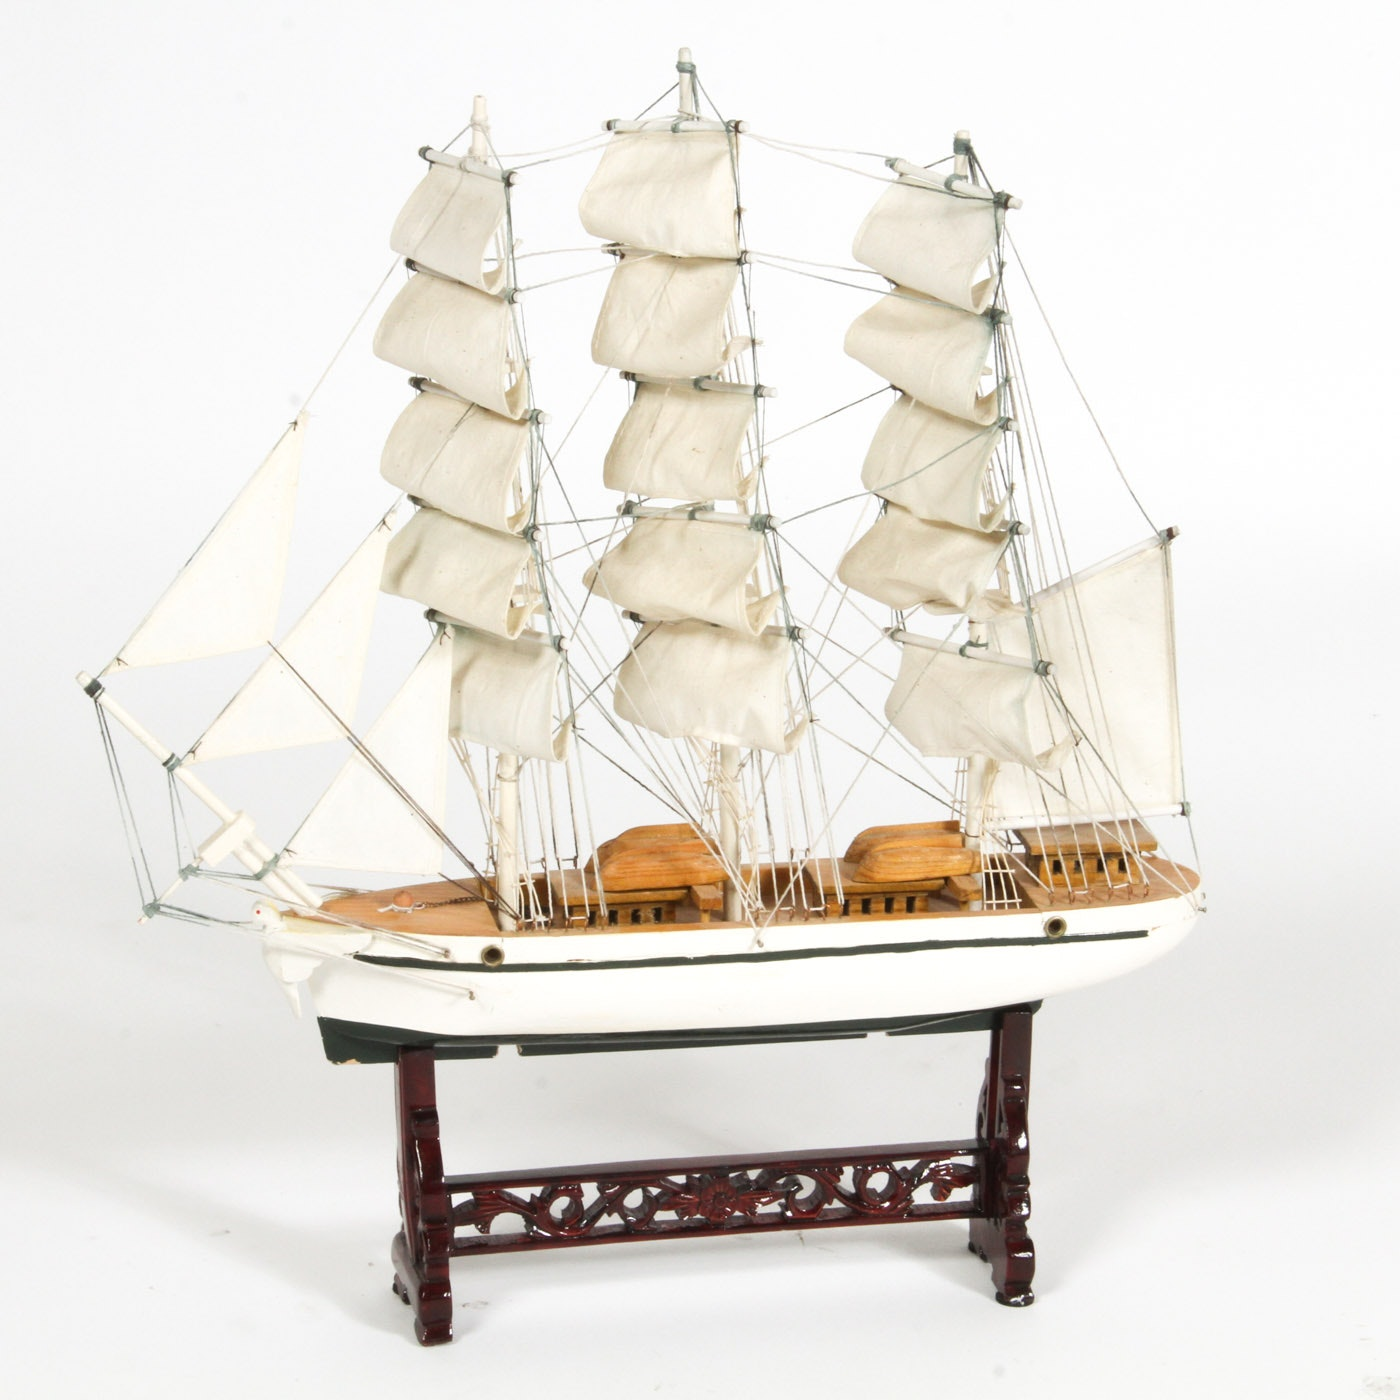 Wood Model Ship with Display Stand